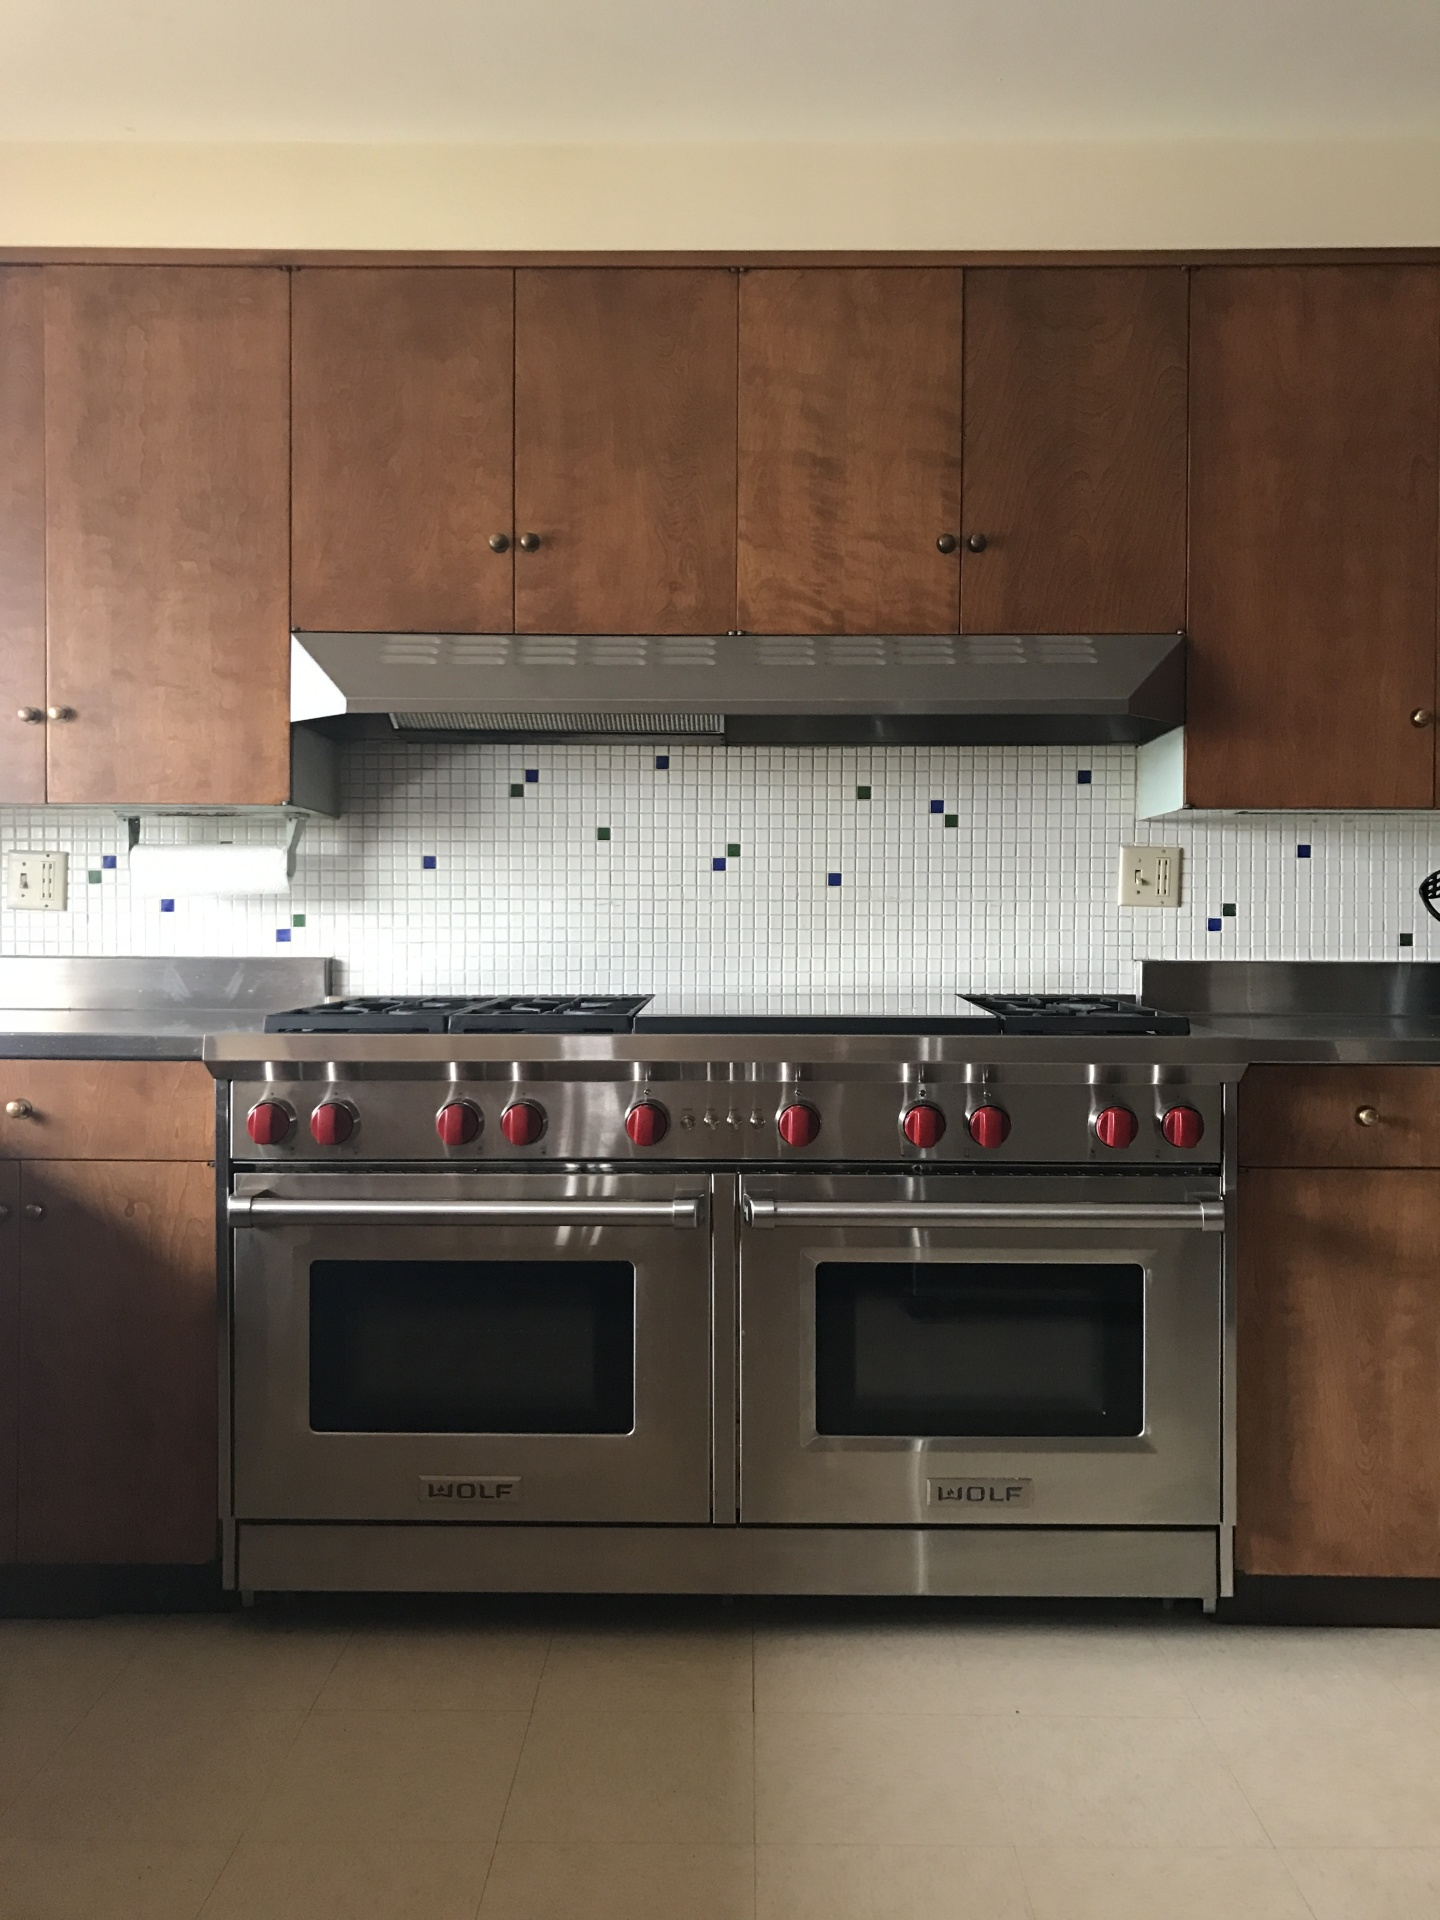 "Big 60"" Wolf double oven with six burners and double griddle"